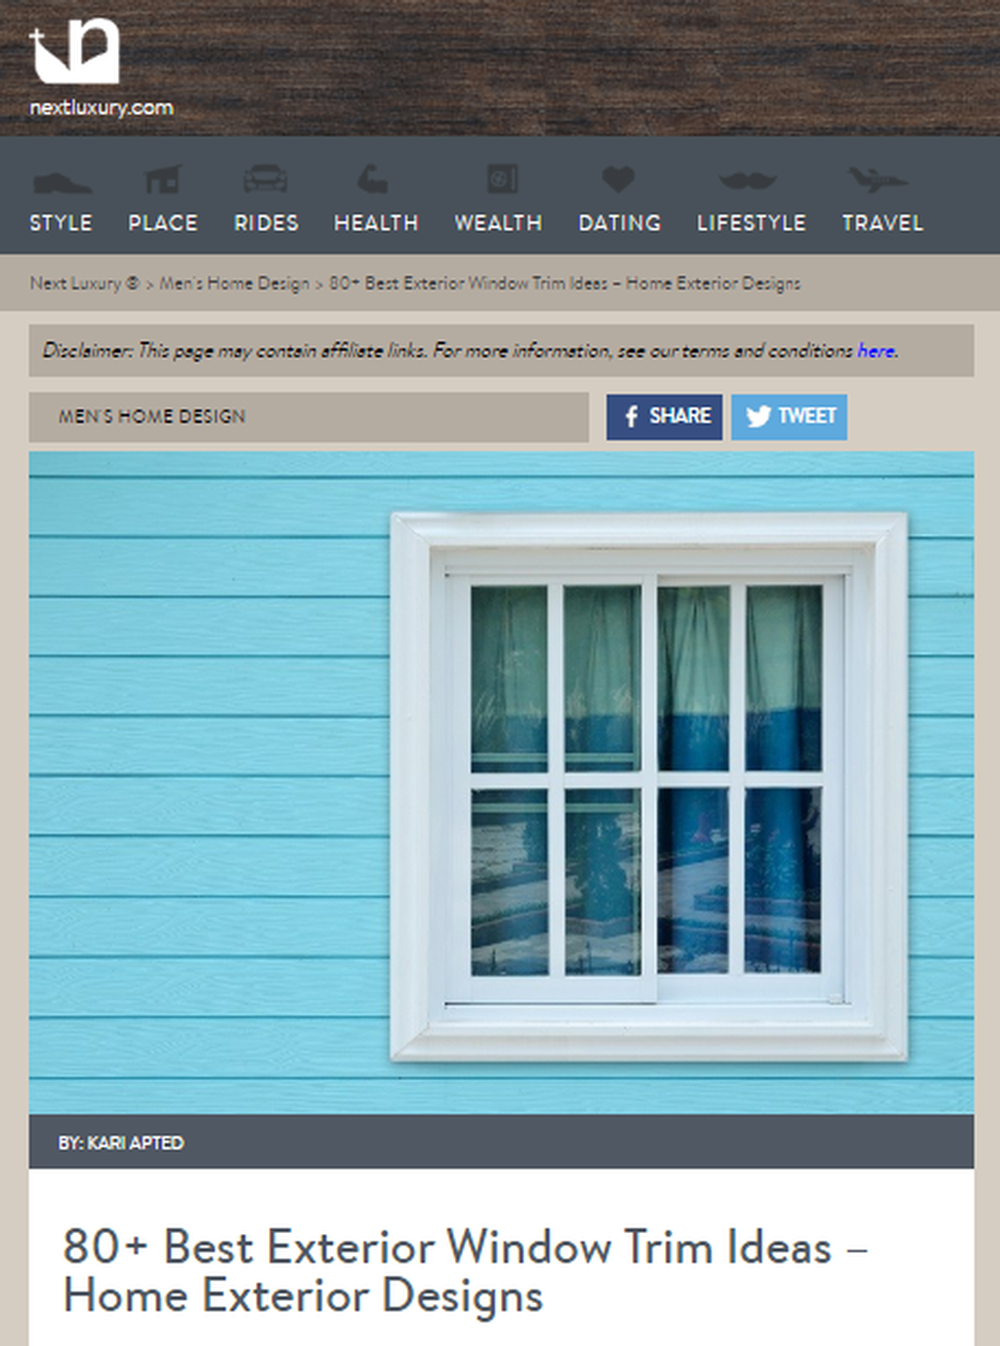 80_Best_Exterior_Window_Trim_Ideas_Home_Exterior_Designs_Next_Luxury.png